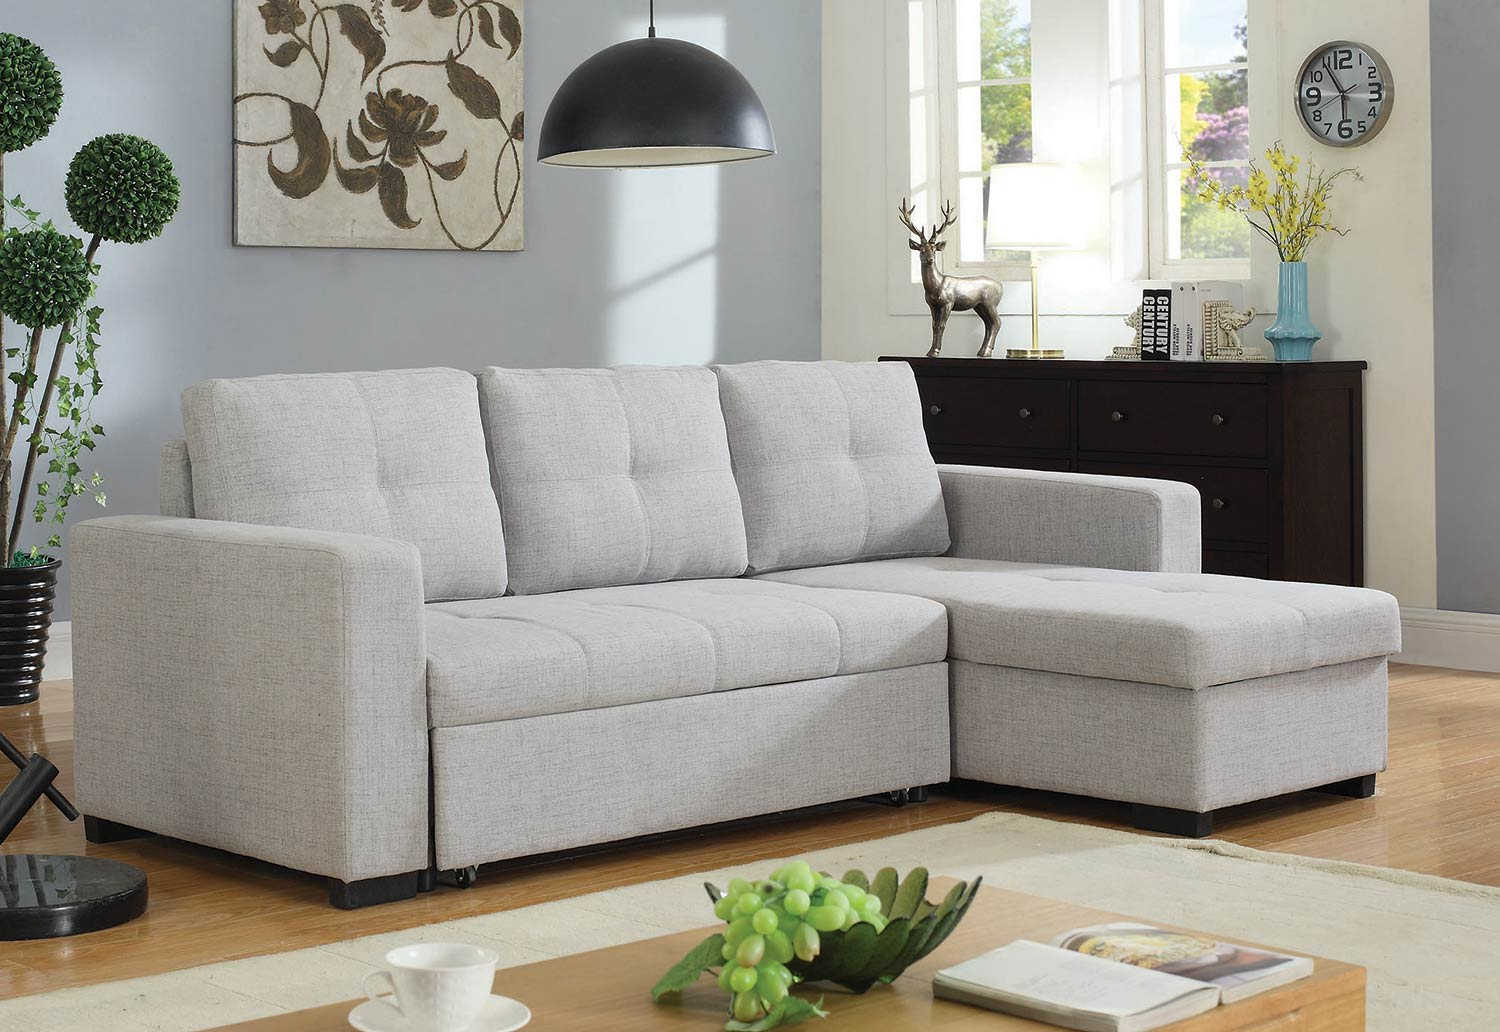 Coaster Everly Sectional Sofa - Beige